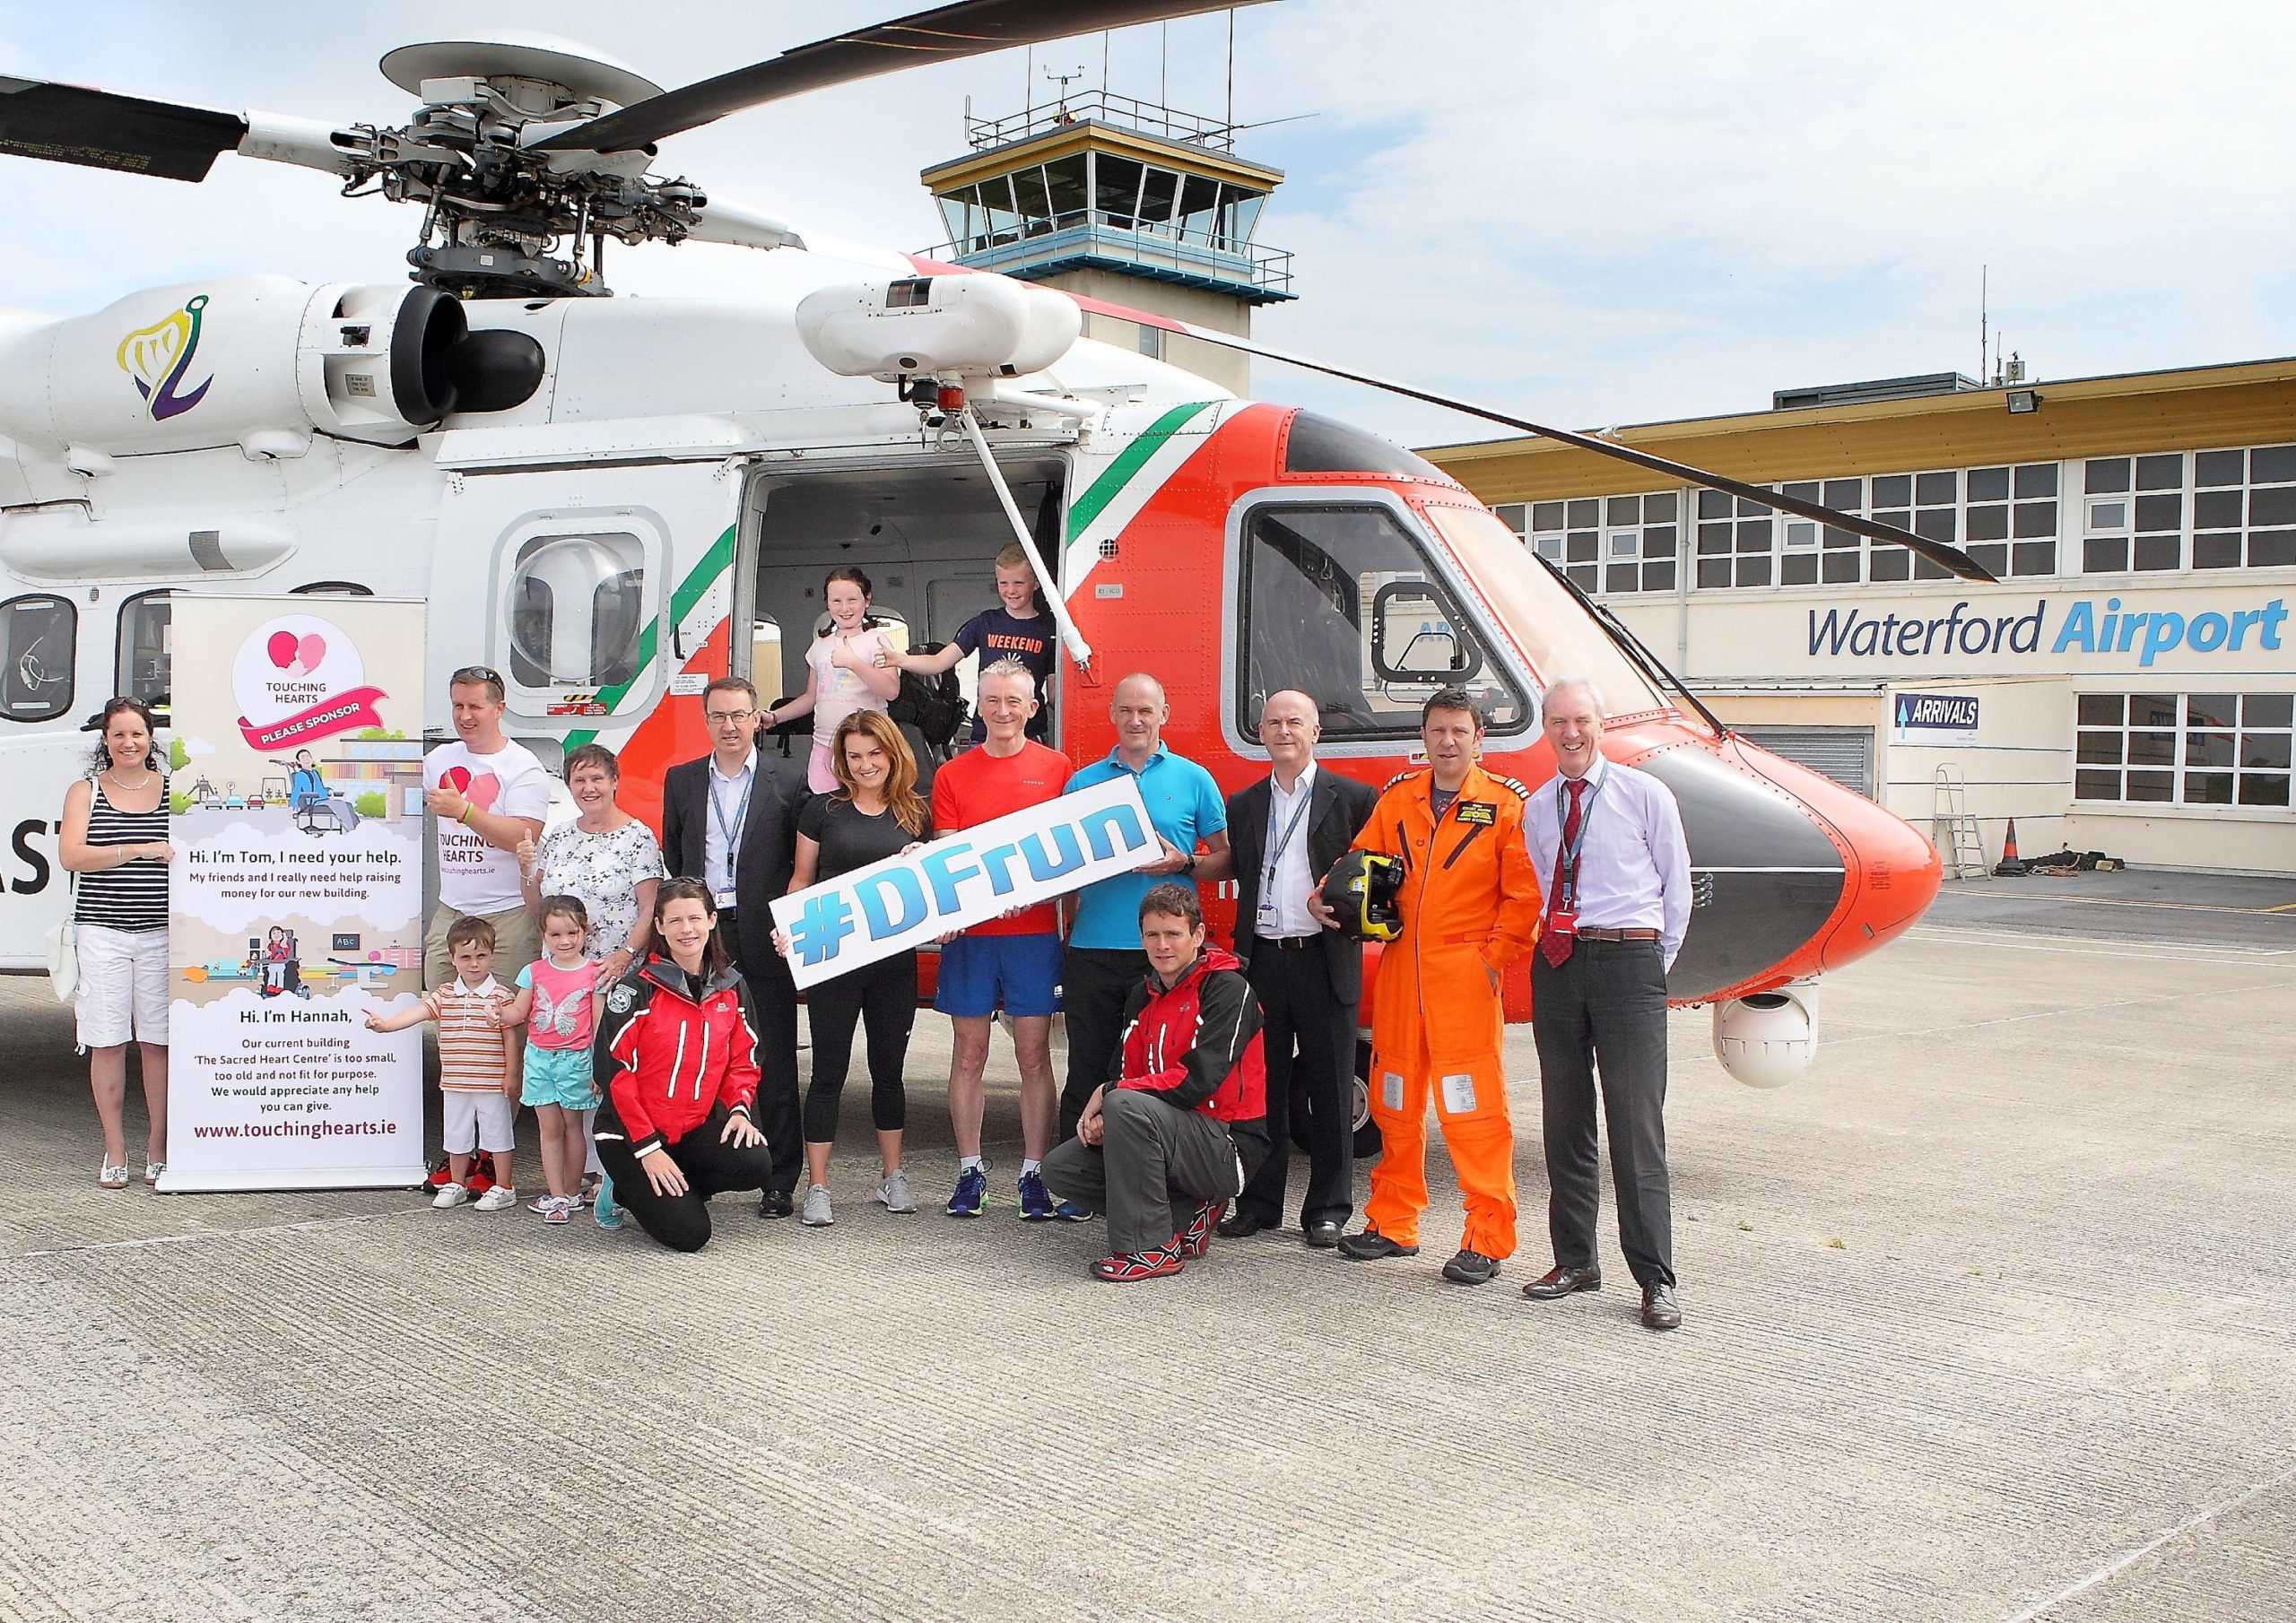 Waterford Airport to Host Runway Run to honour the memory of Dara Fitzpatrick